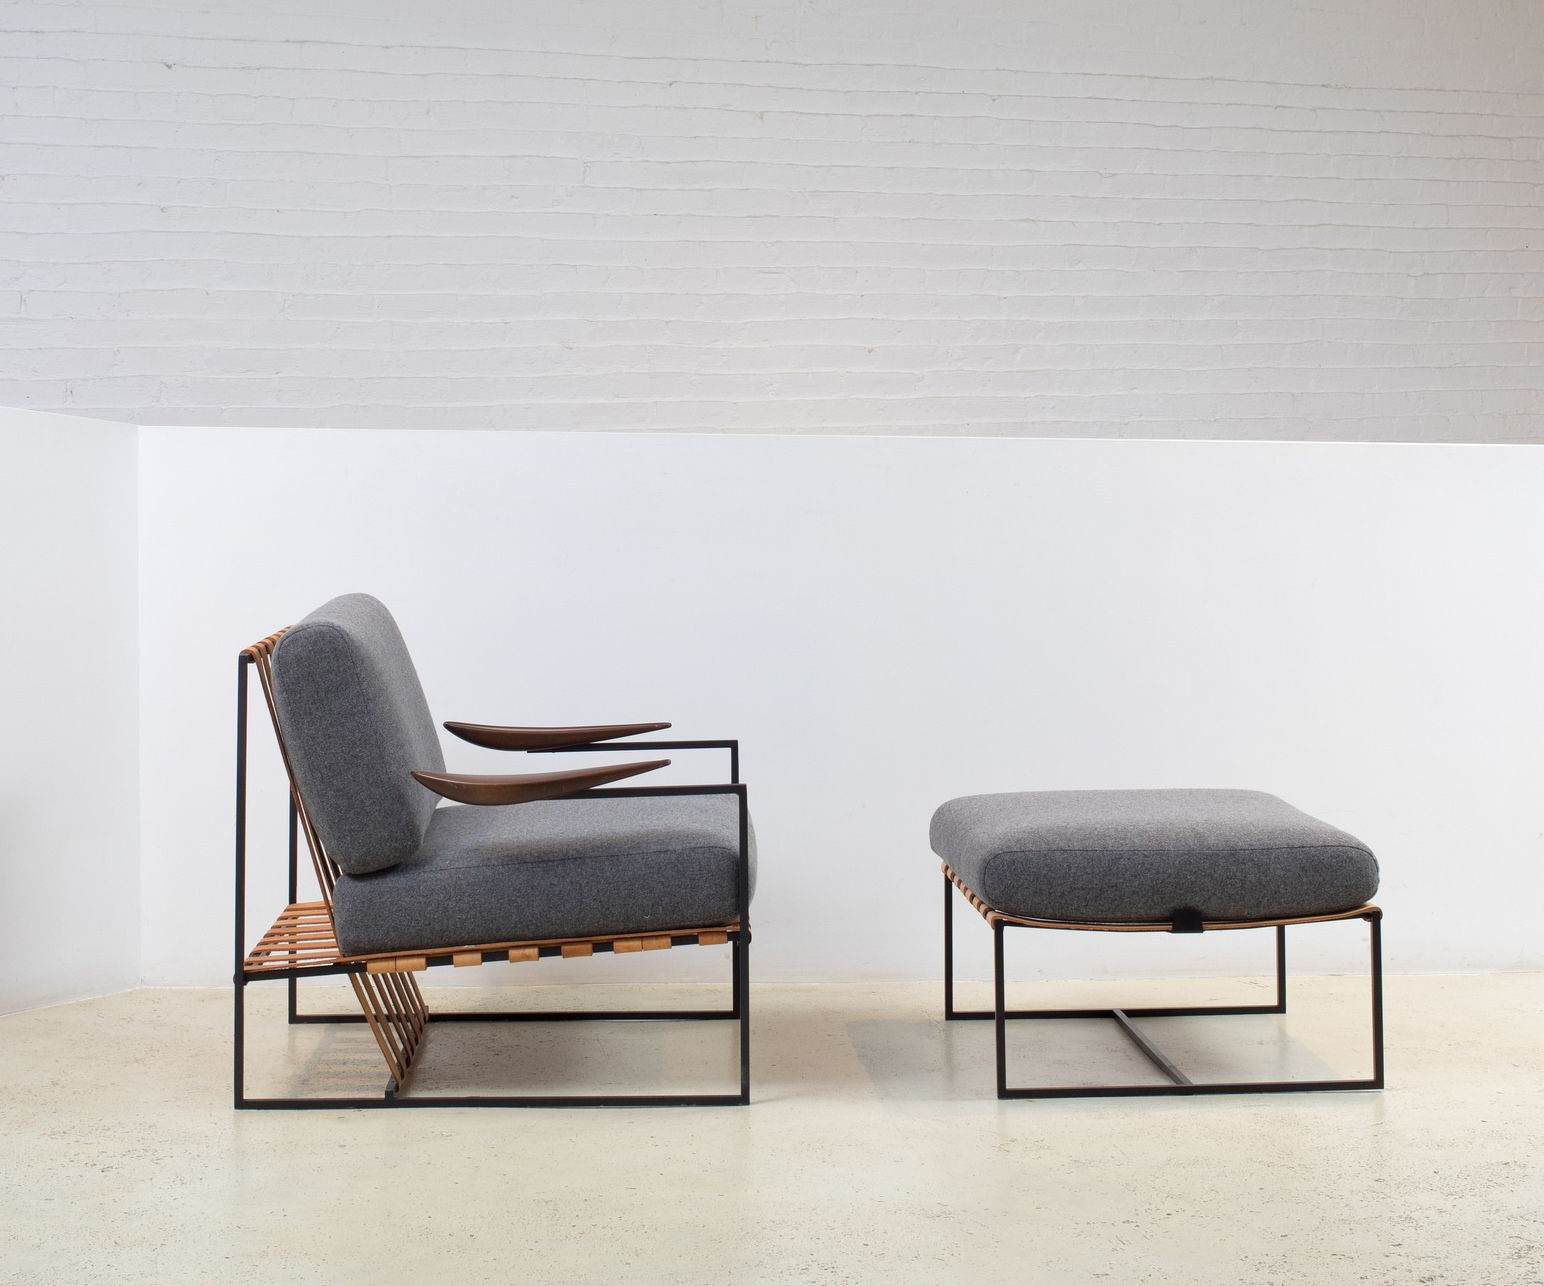 Most Popular Modern Armchairs And Ottoman With Annette Armchair And Ottoman Designedjorge Zalszupin (View 3 of 20)